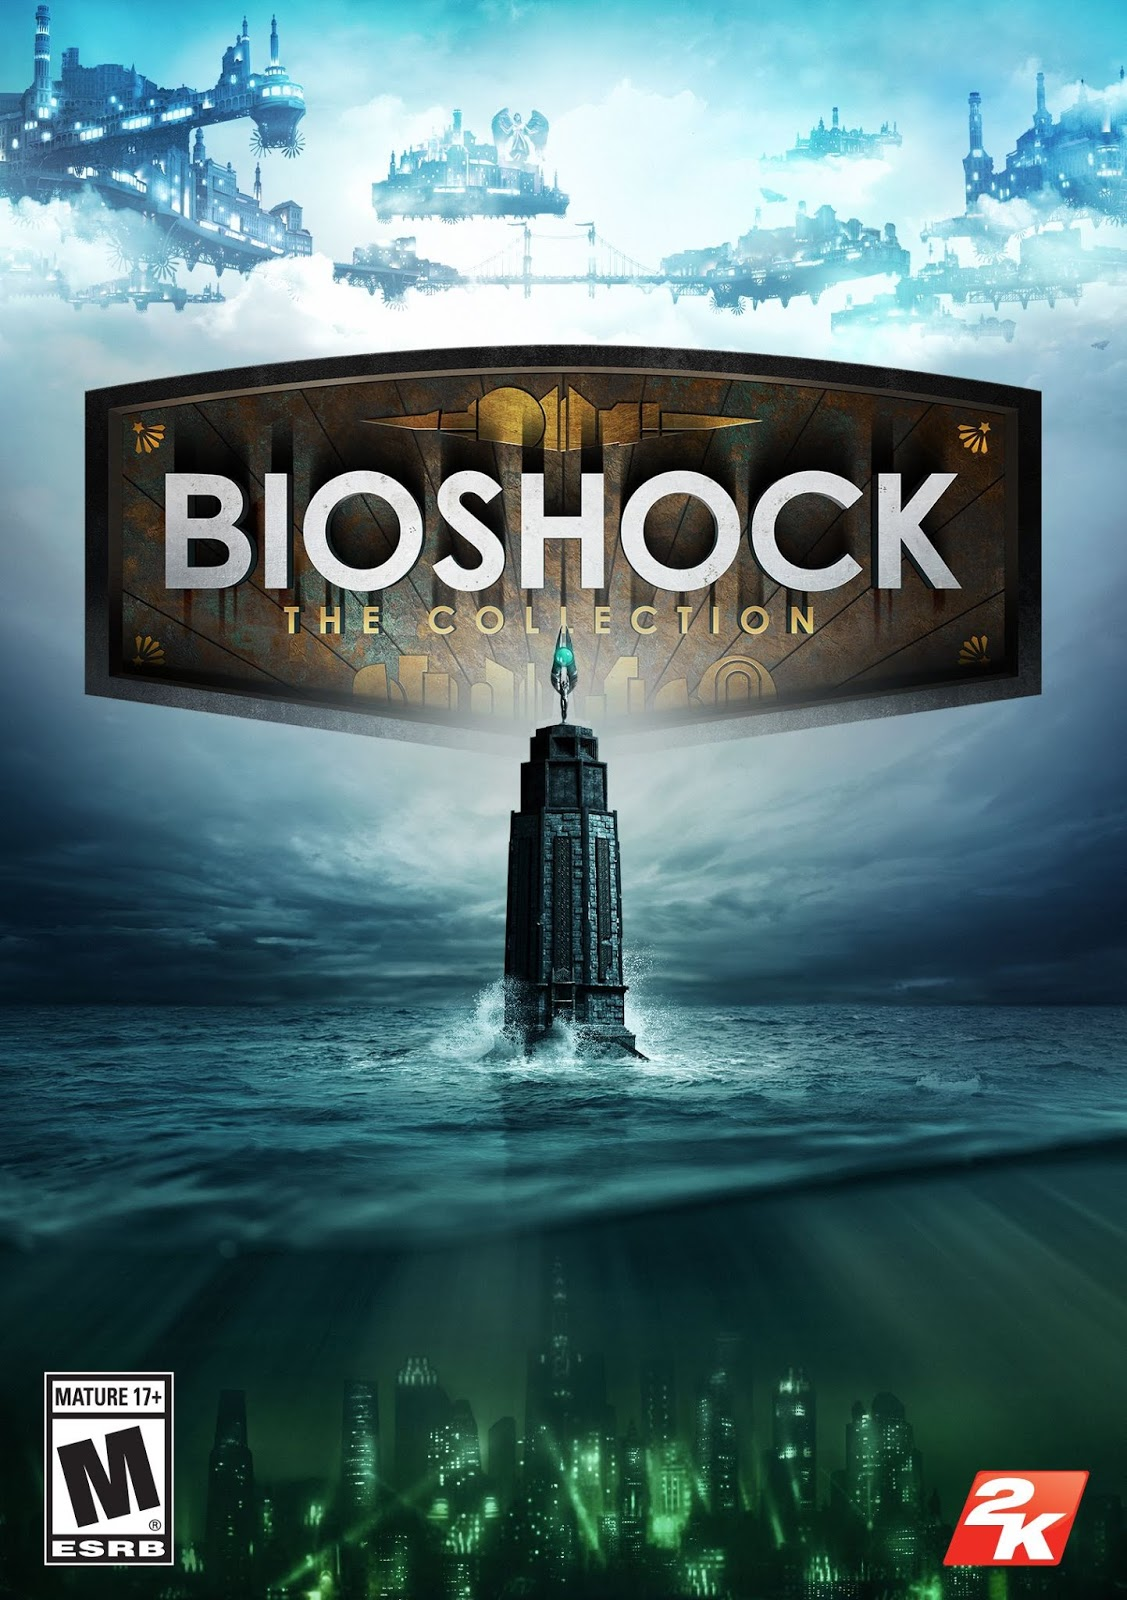 Descargar BioShock The Collection PC Cover Caratula-www.juegosparawindows.com